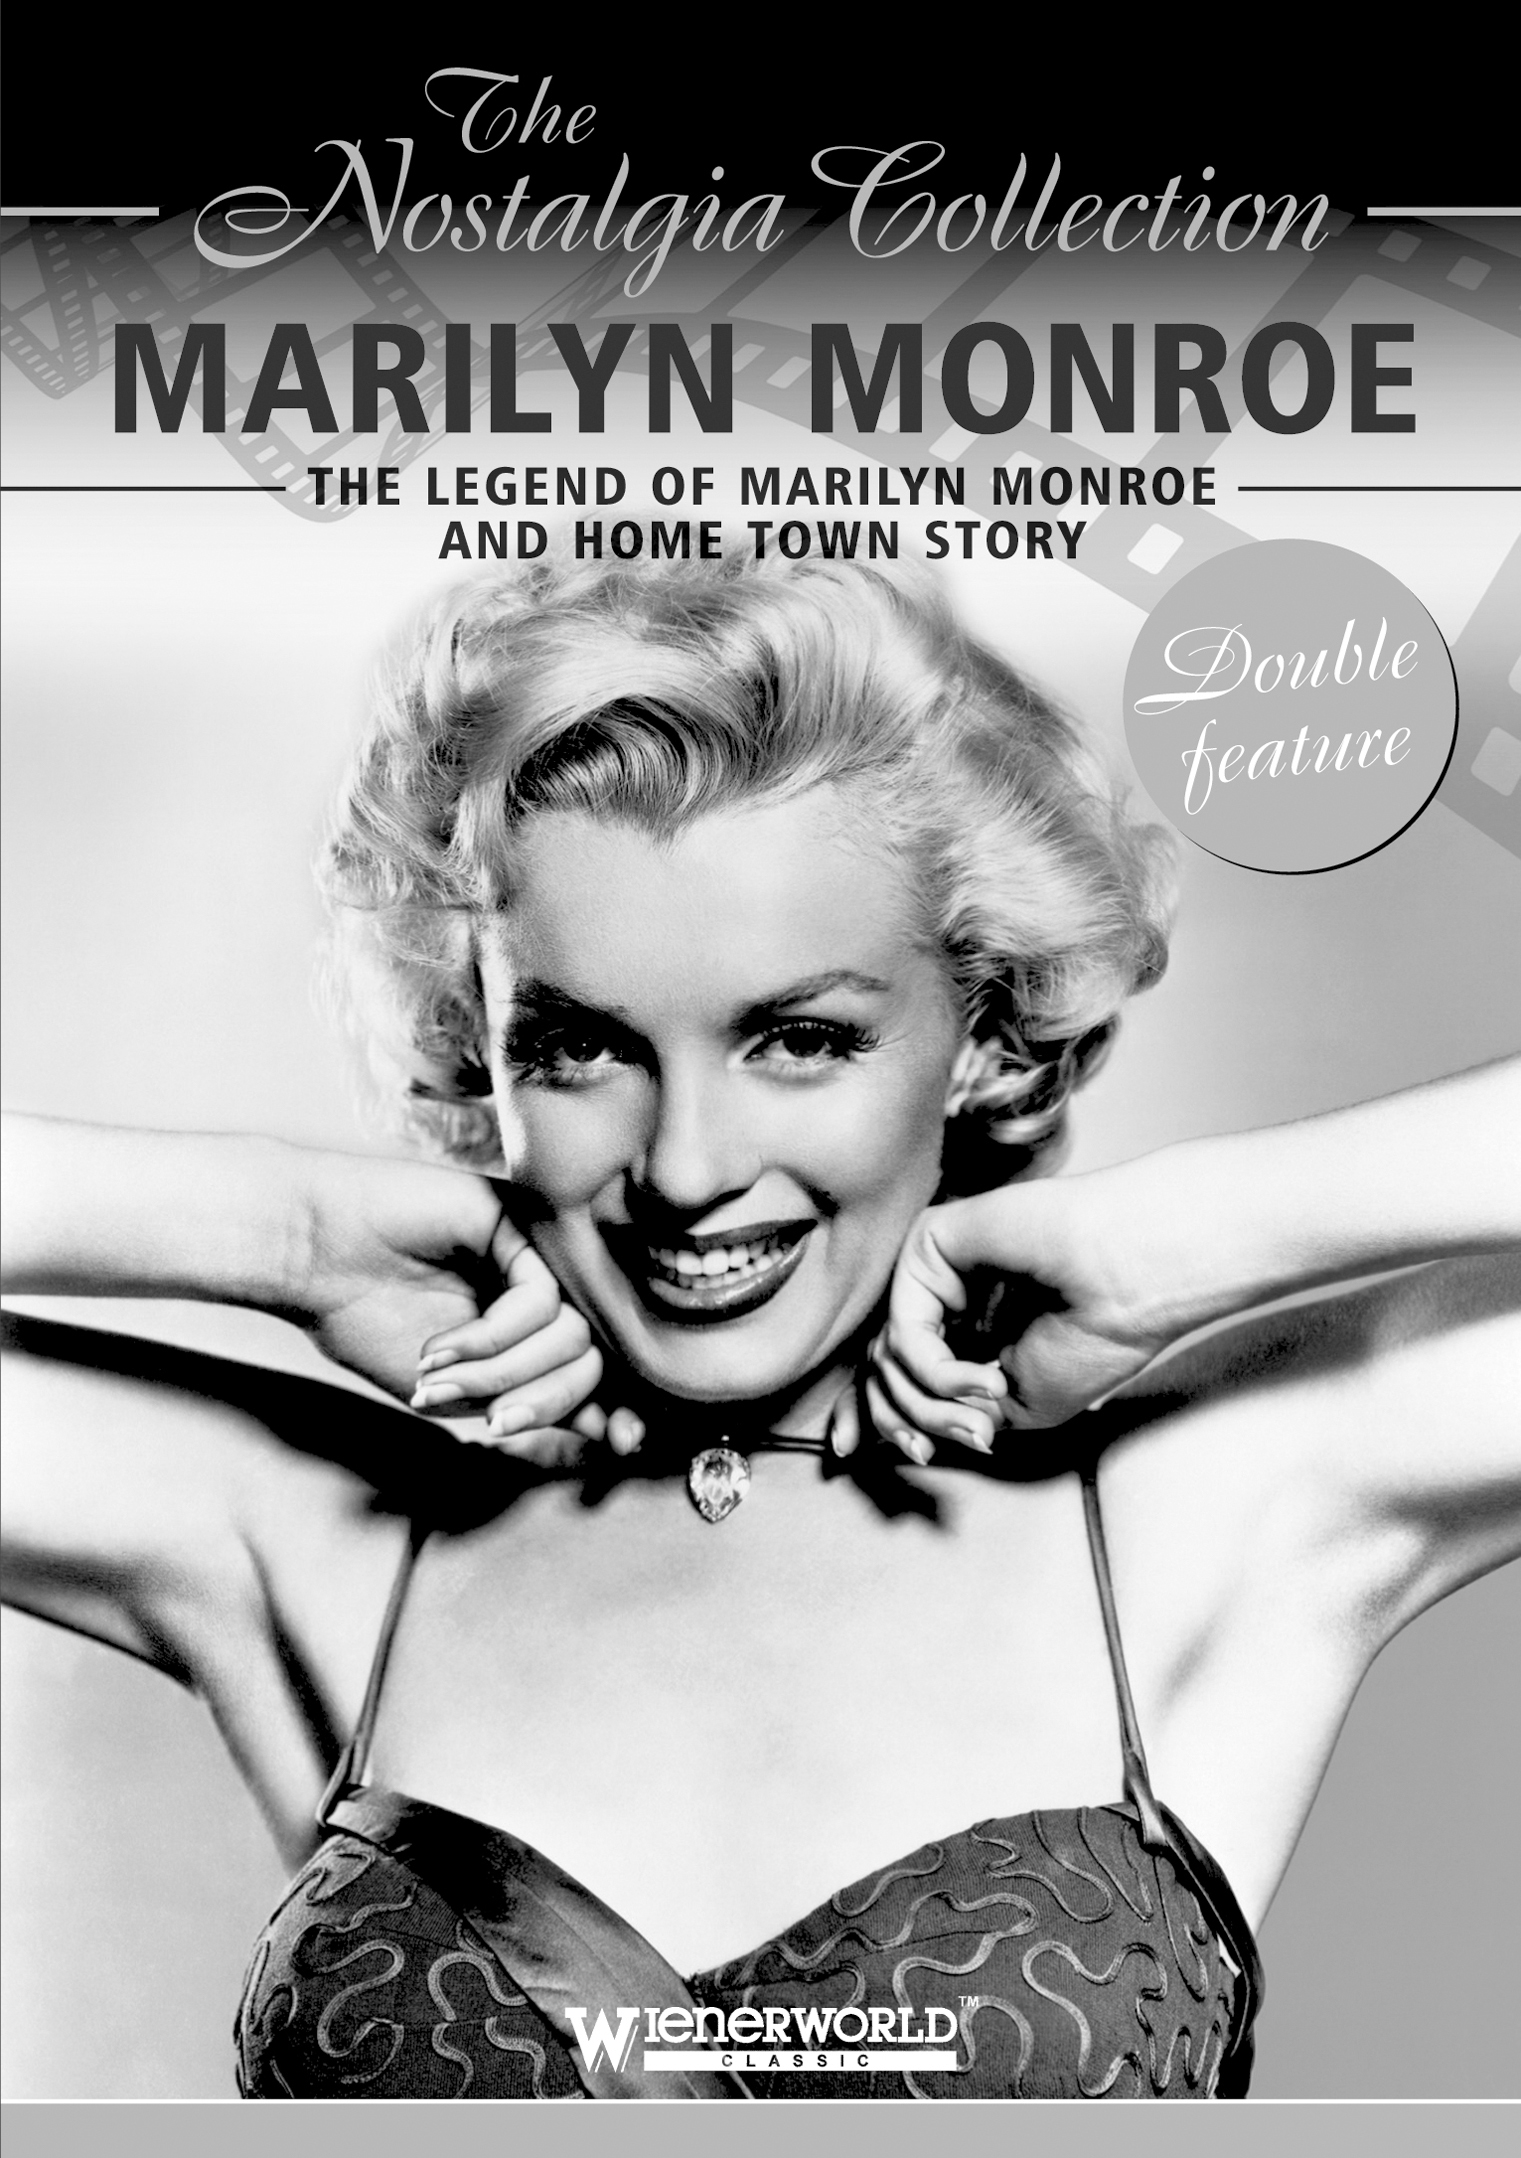 marilyn monroe legend of marilyn monroe and home town story the nostalgia collection mvd. Black Bedroom Furniture Sets. Home Design Ideas